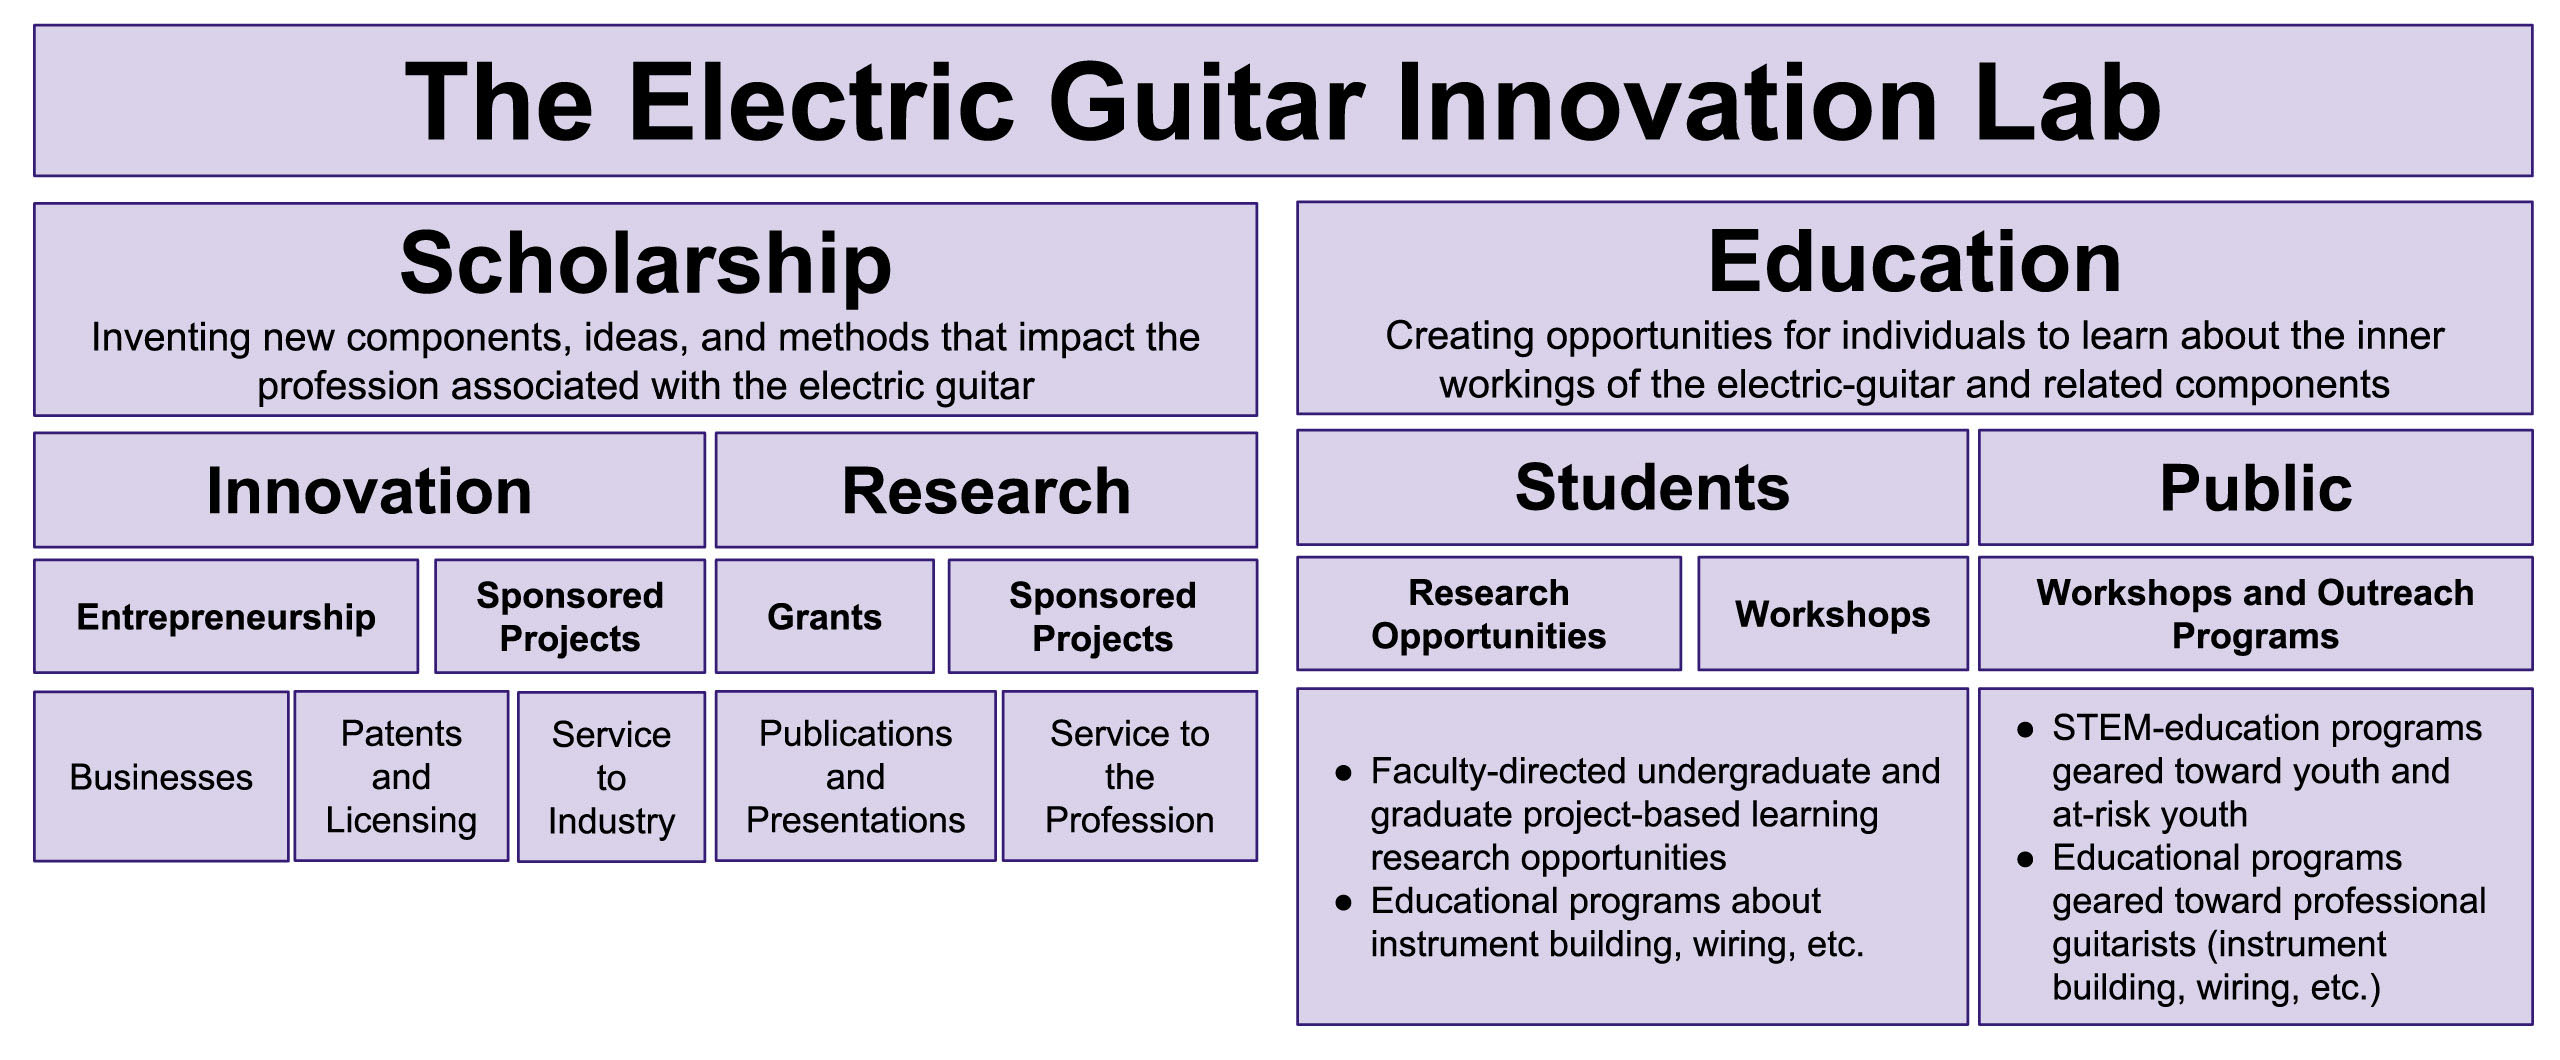 Electric Guitar Innovation Lab structure of work